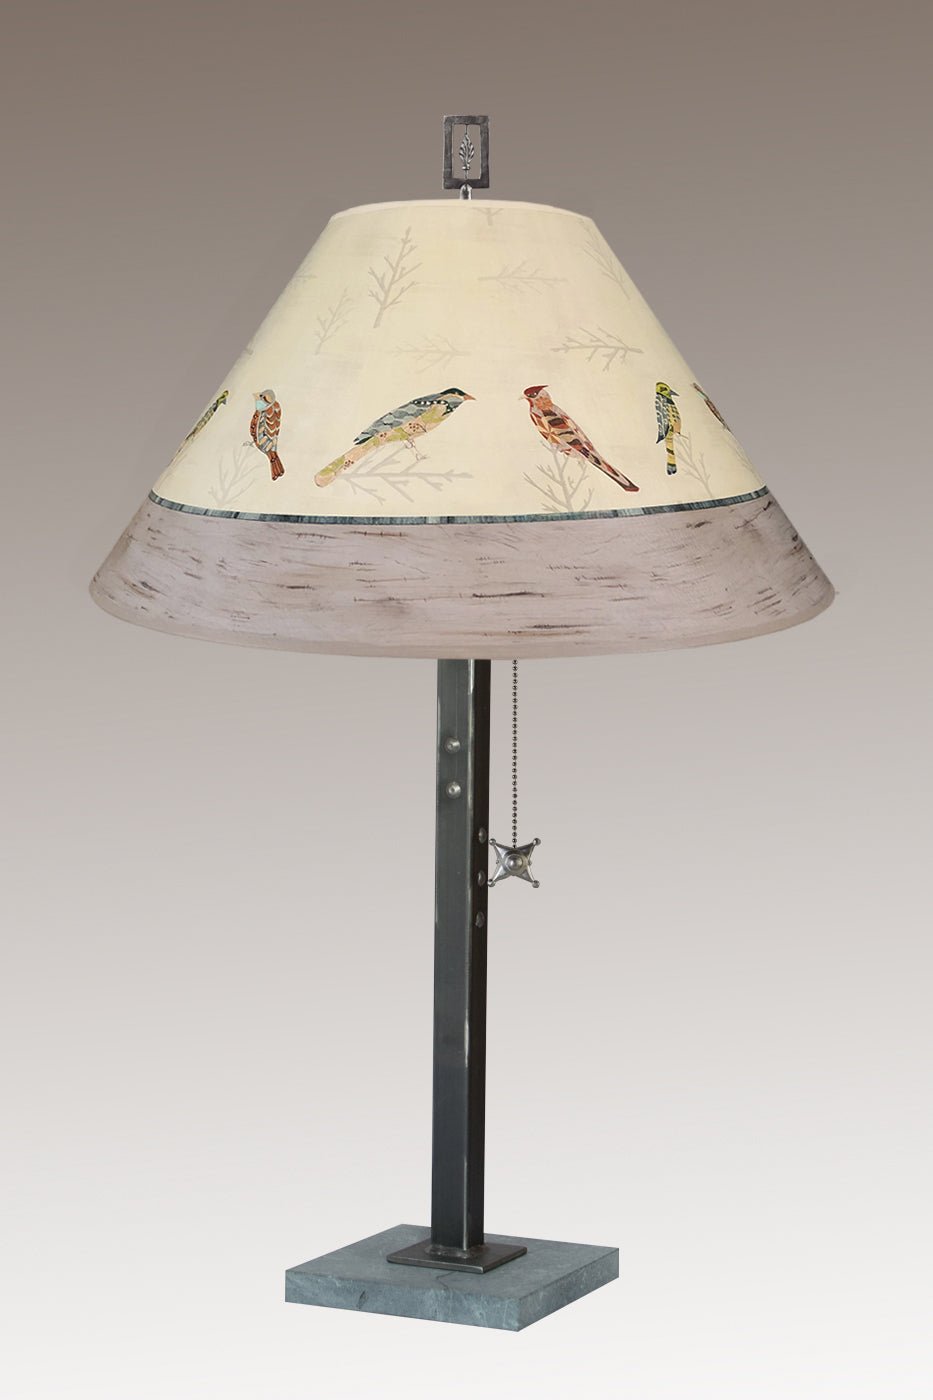 Steel Table Lamp on Italian Marble with Large Conical Shade in Bird Friends